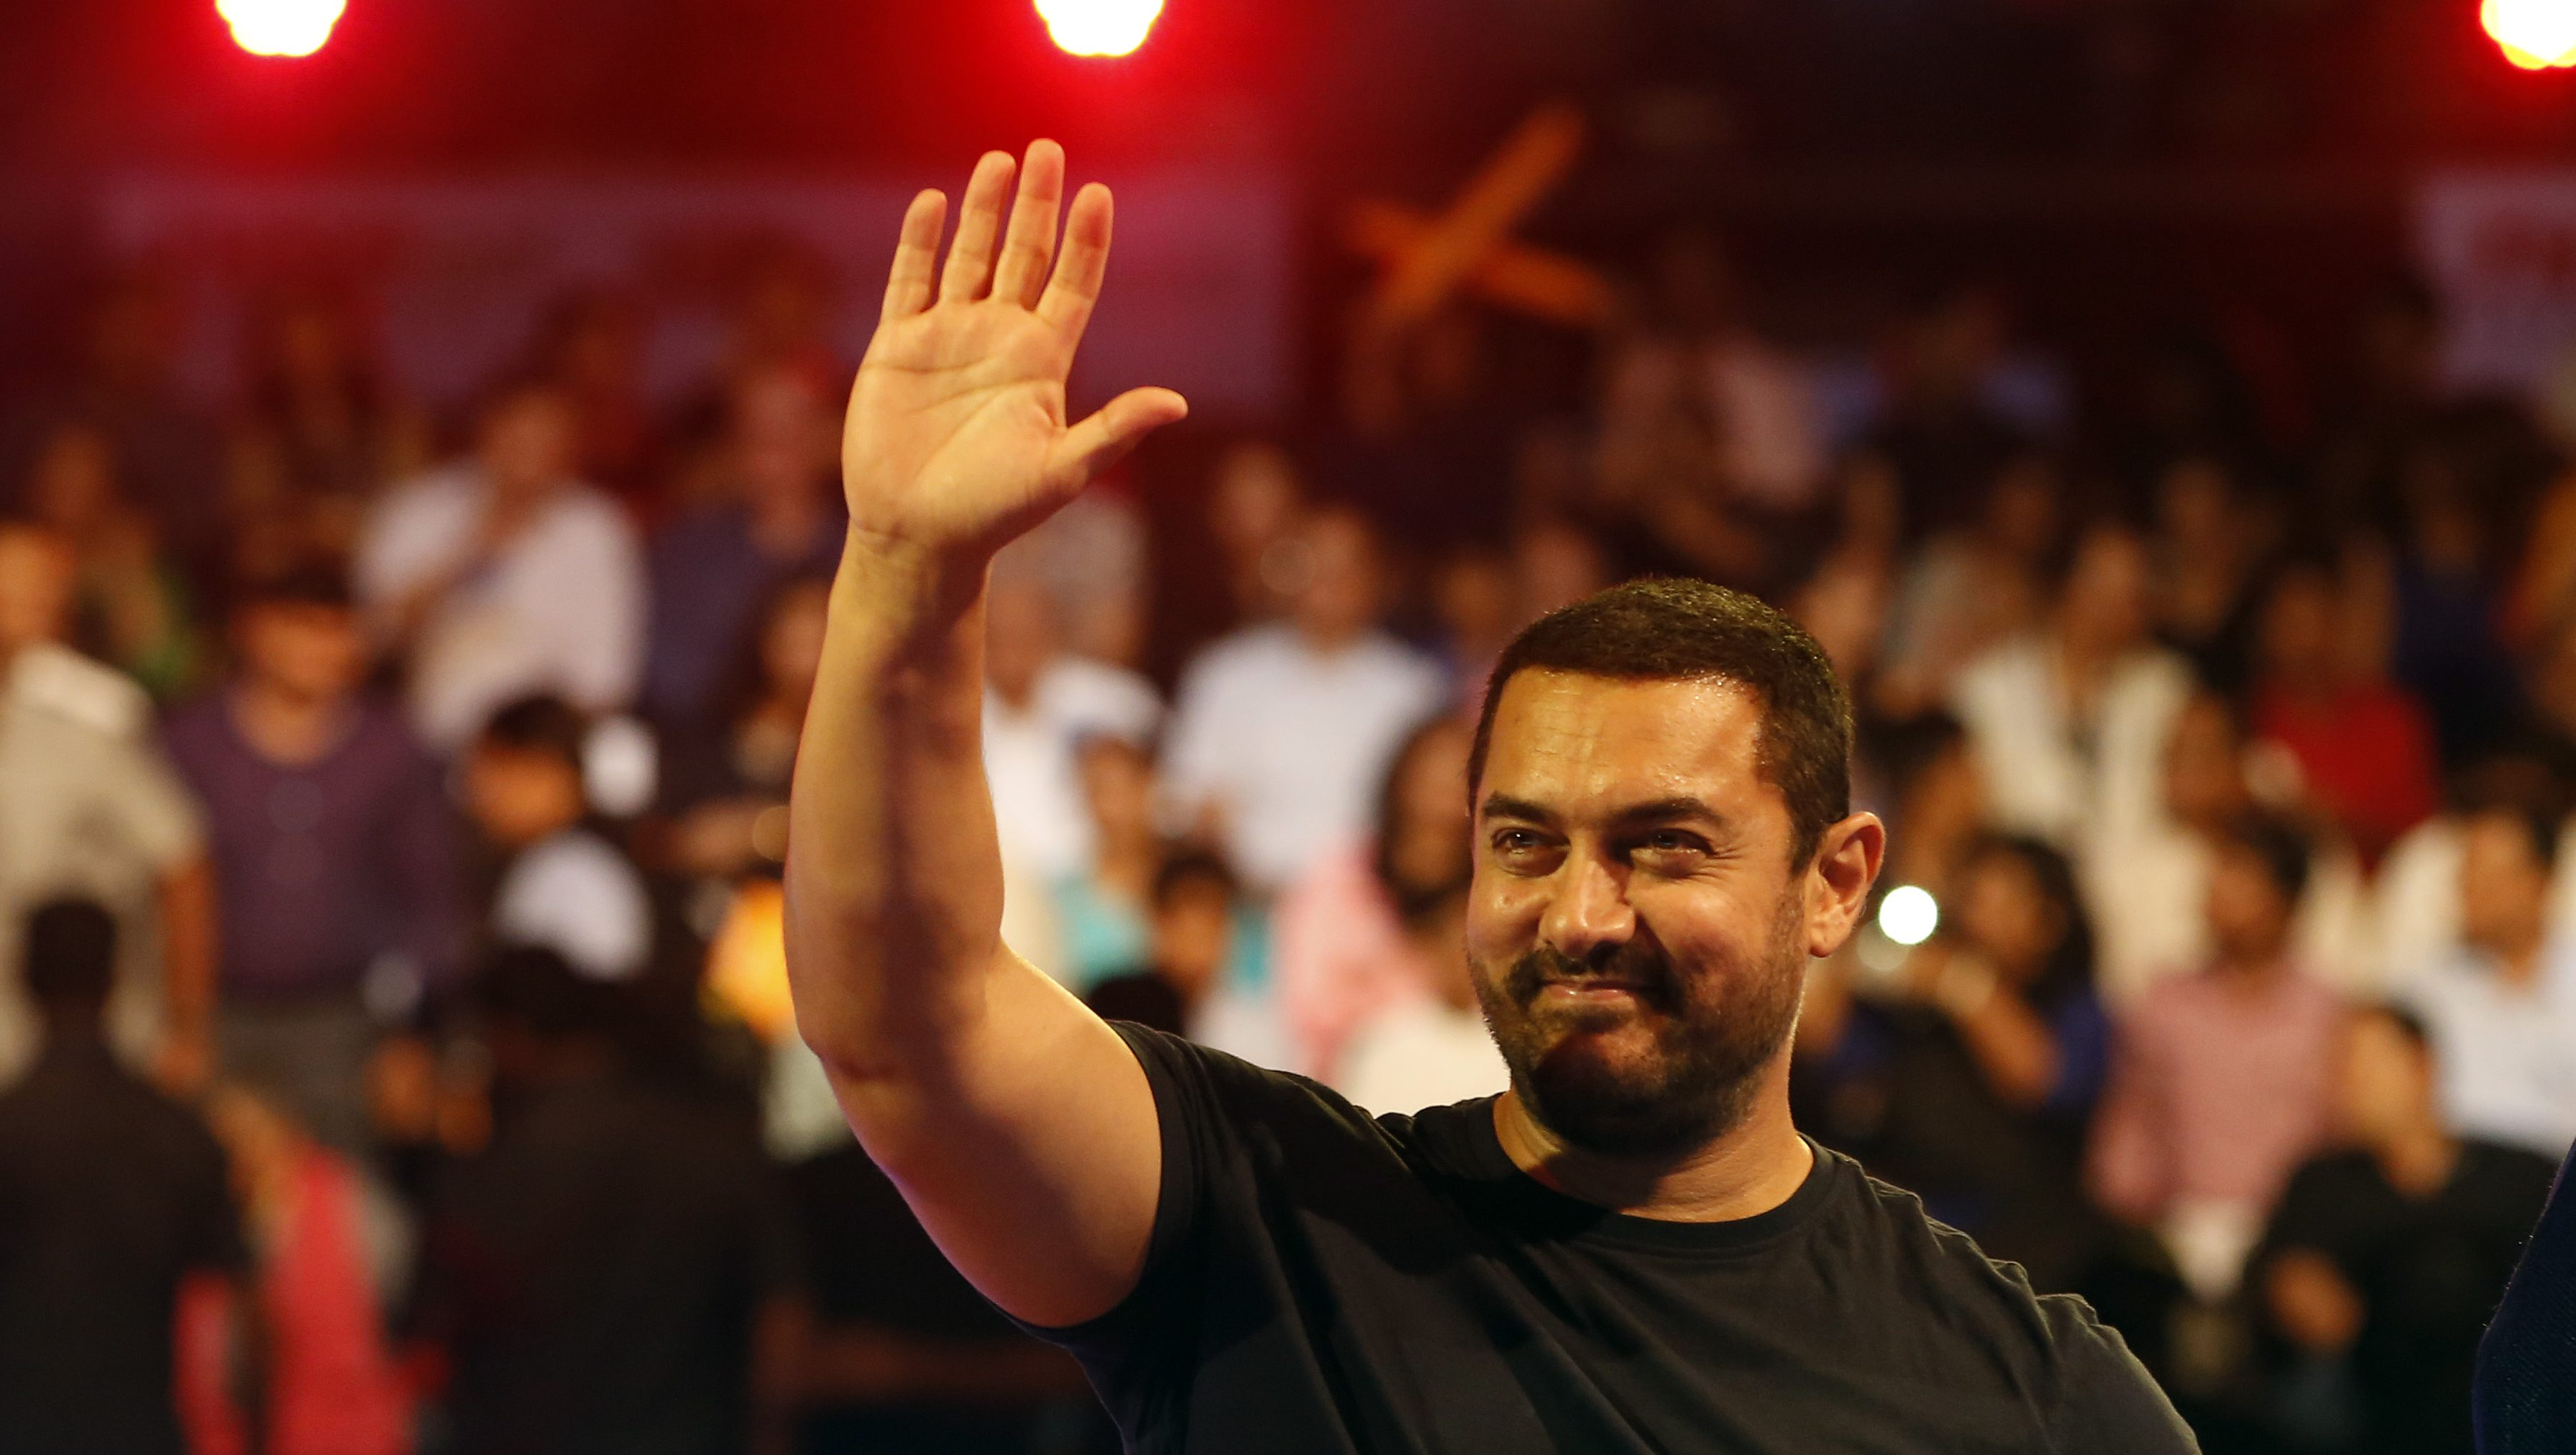 Bollywood actor Aamir Khan waves to the crowd as he attends the inaugural session of Pro-Kabaddi League 2015 in Mumbai, India, Saturday, July 18, 2015. (AP Photo/Rajanish Kakade)